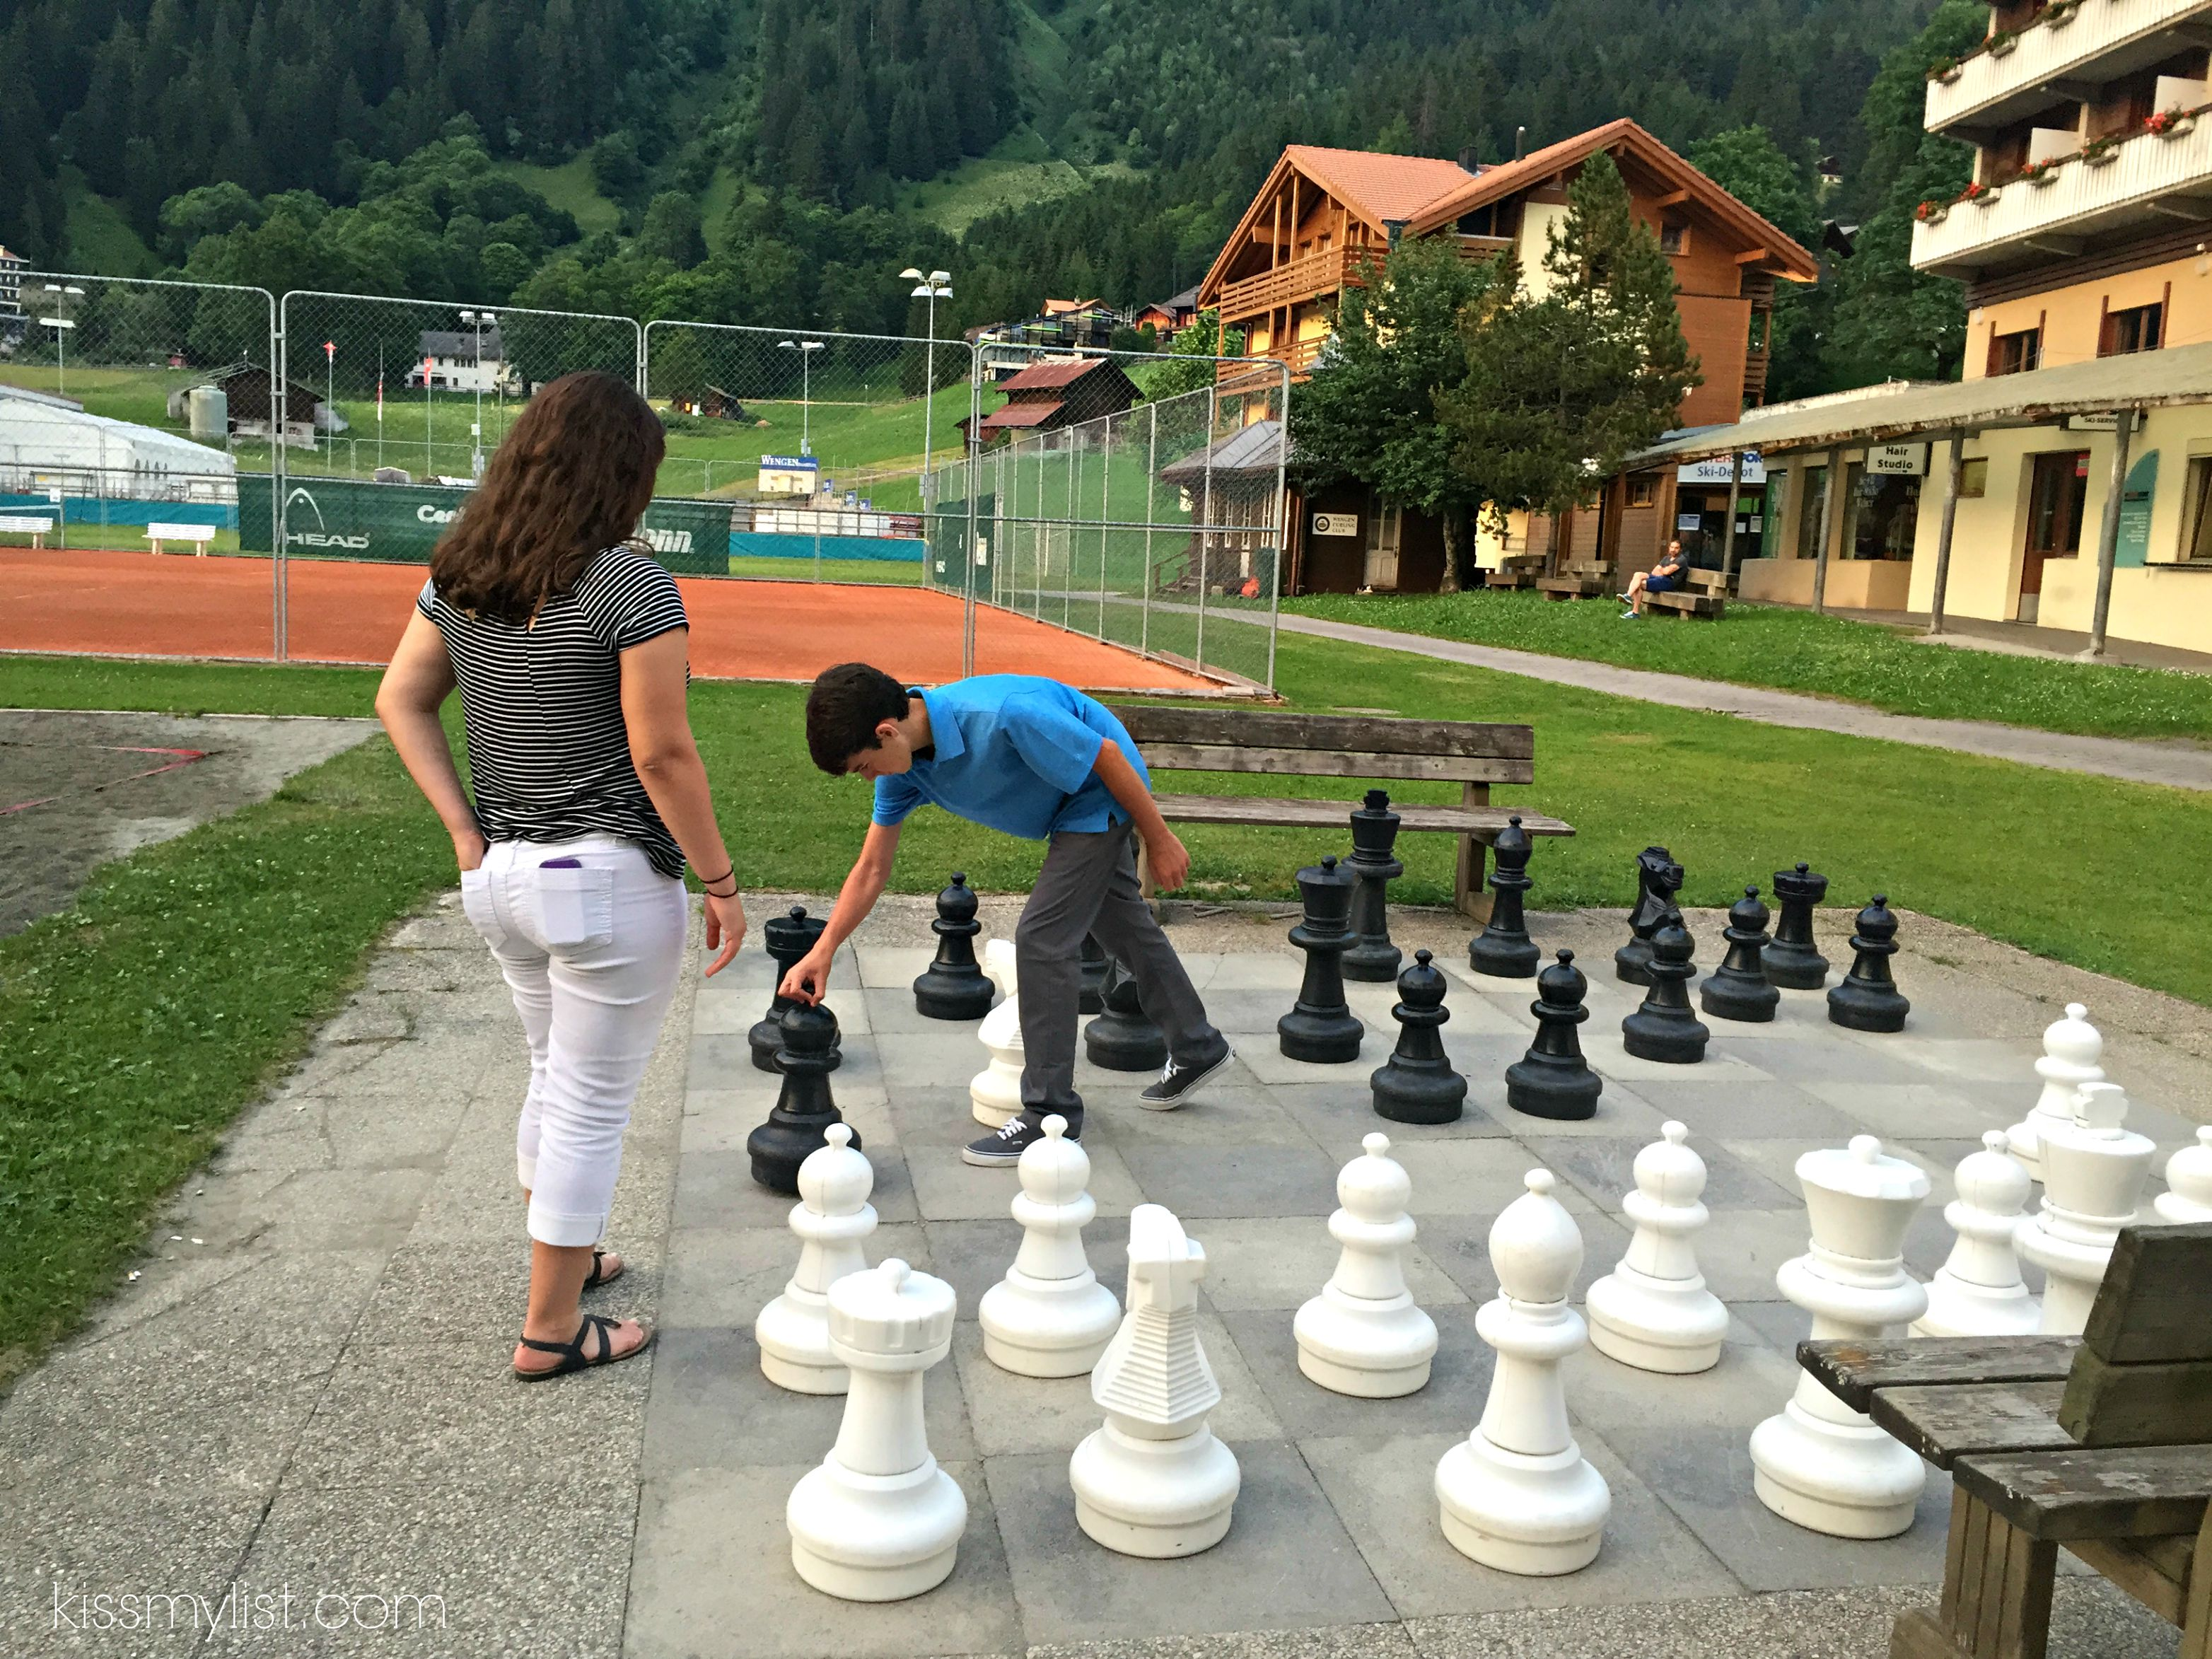 Life size chess in Wengen